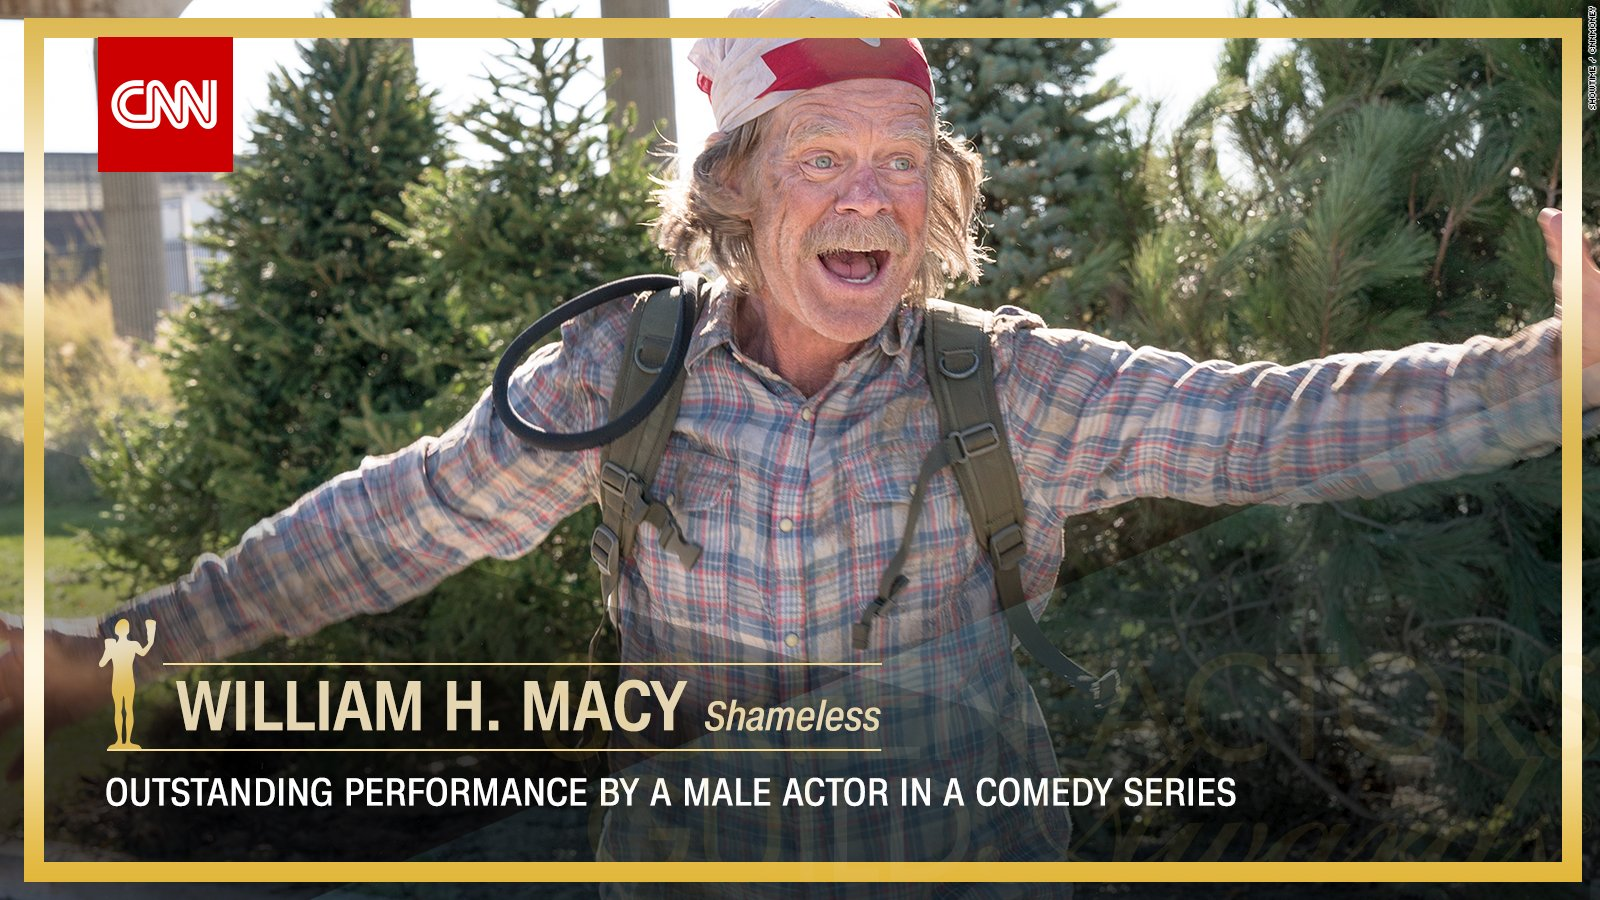 William H. Macy wins Outstanding Performance by a Male Actor in a Comedy Series. https://t.co/cPly9Wzl8b #SAGAwards https://t.co/sFWDcVgczu